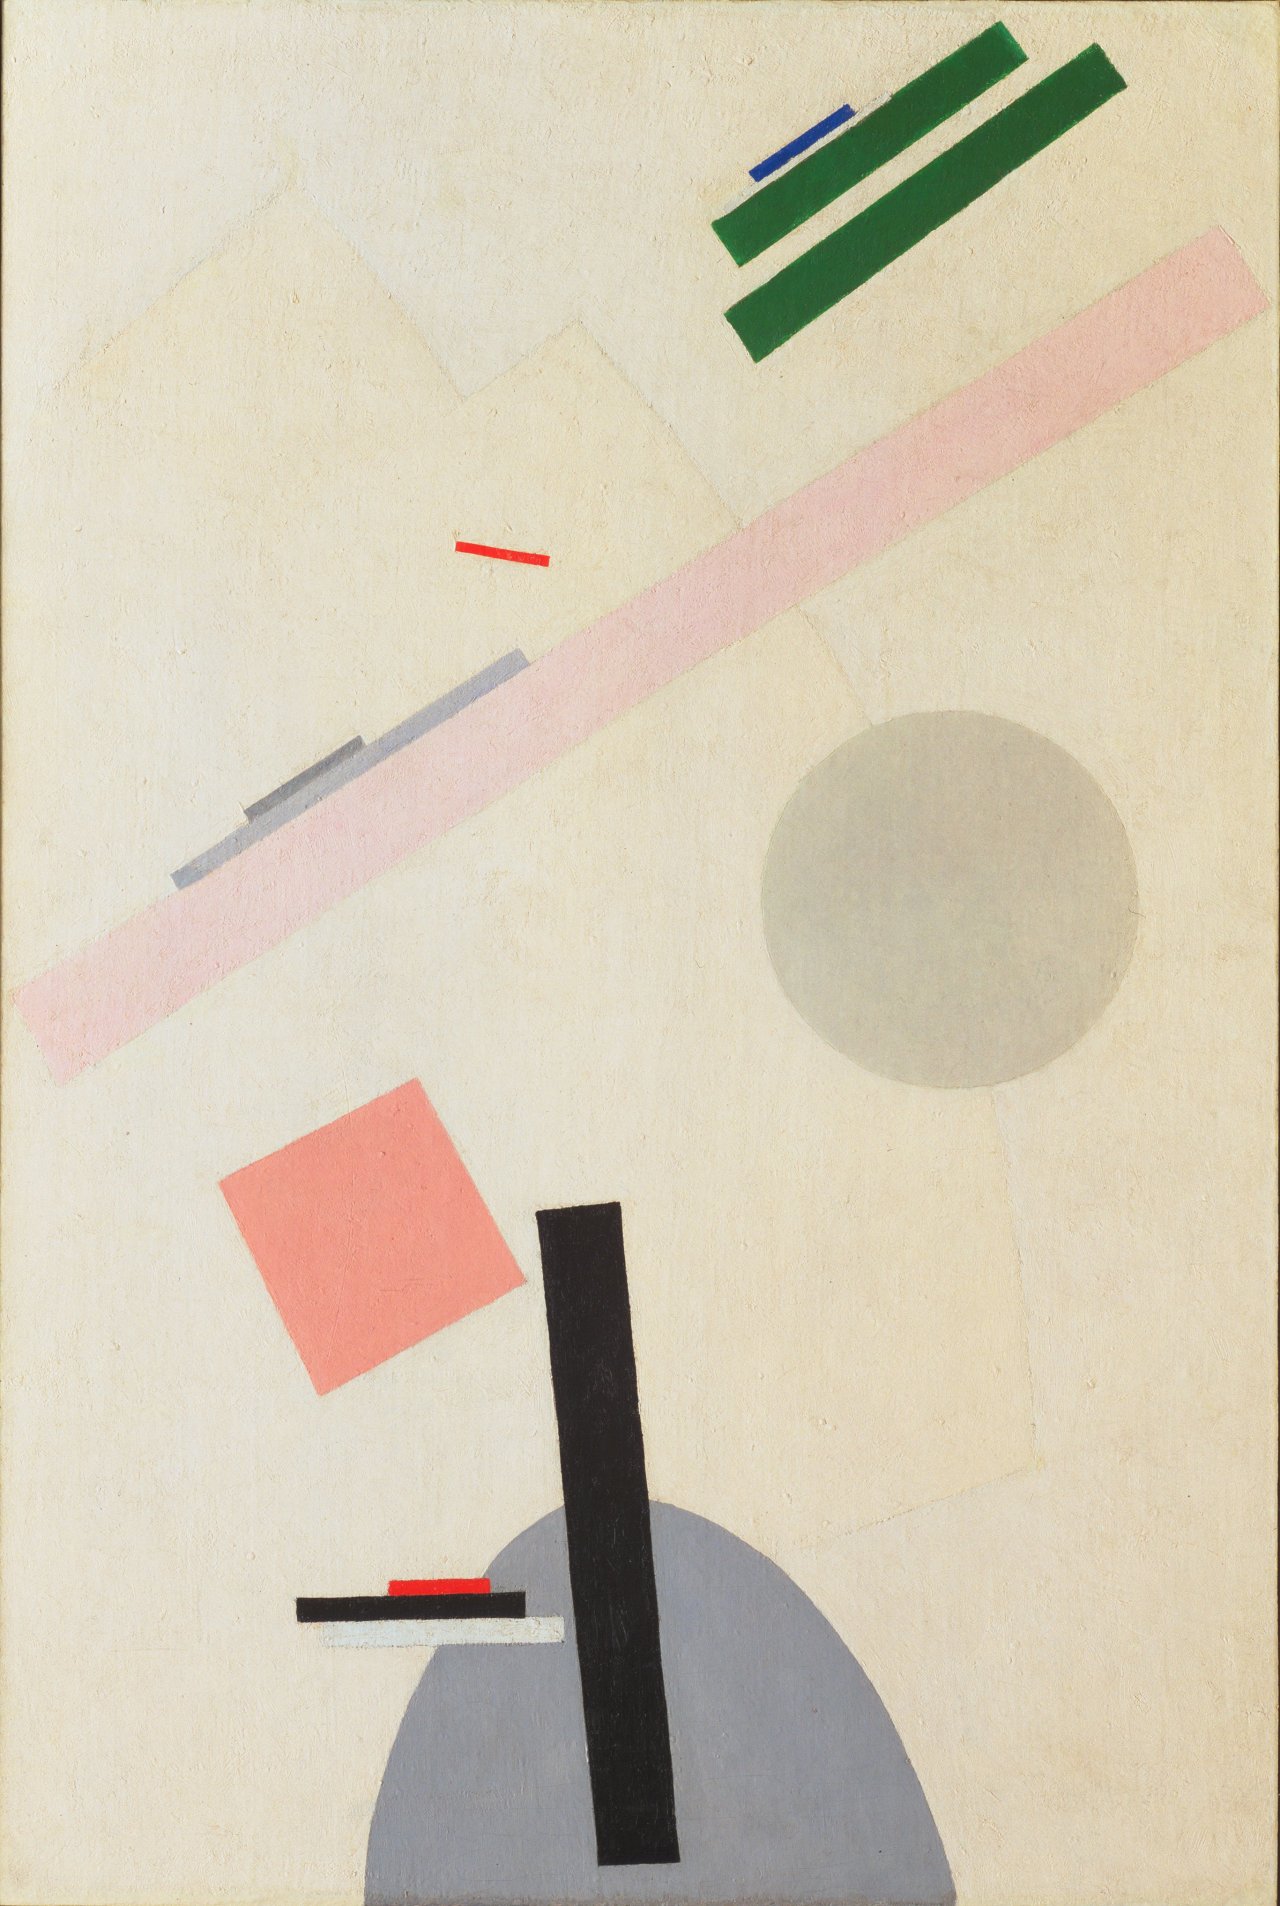 """moma :    Kazimir Malevich , born today in 1878, was one of the pioneers of abstract art. In December 1915, Malevich unveiled a radically new mode of abstract painting that abandoned all reference to the outside world in favor of colored geometric shapes floating against white backgrounds. Because his new style claimed supremacy over the forms of nature, he called it """"Suprematism.""""  [Kazimir Malevich.   Suprematist Painting  . 1916-17]"""